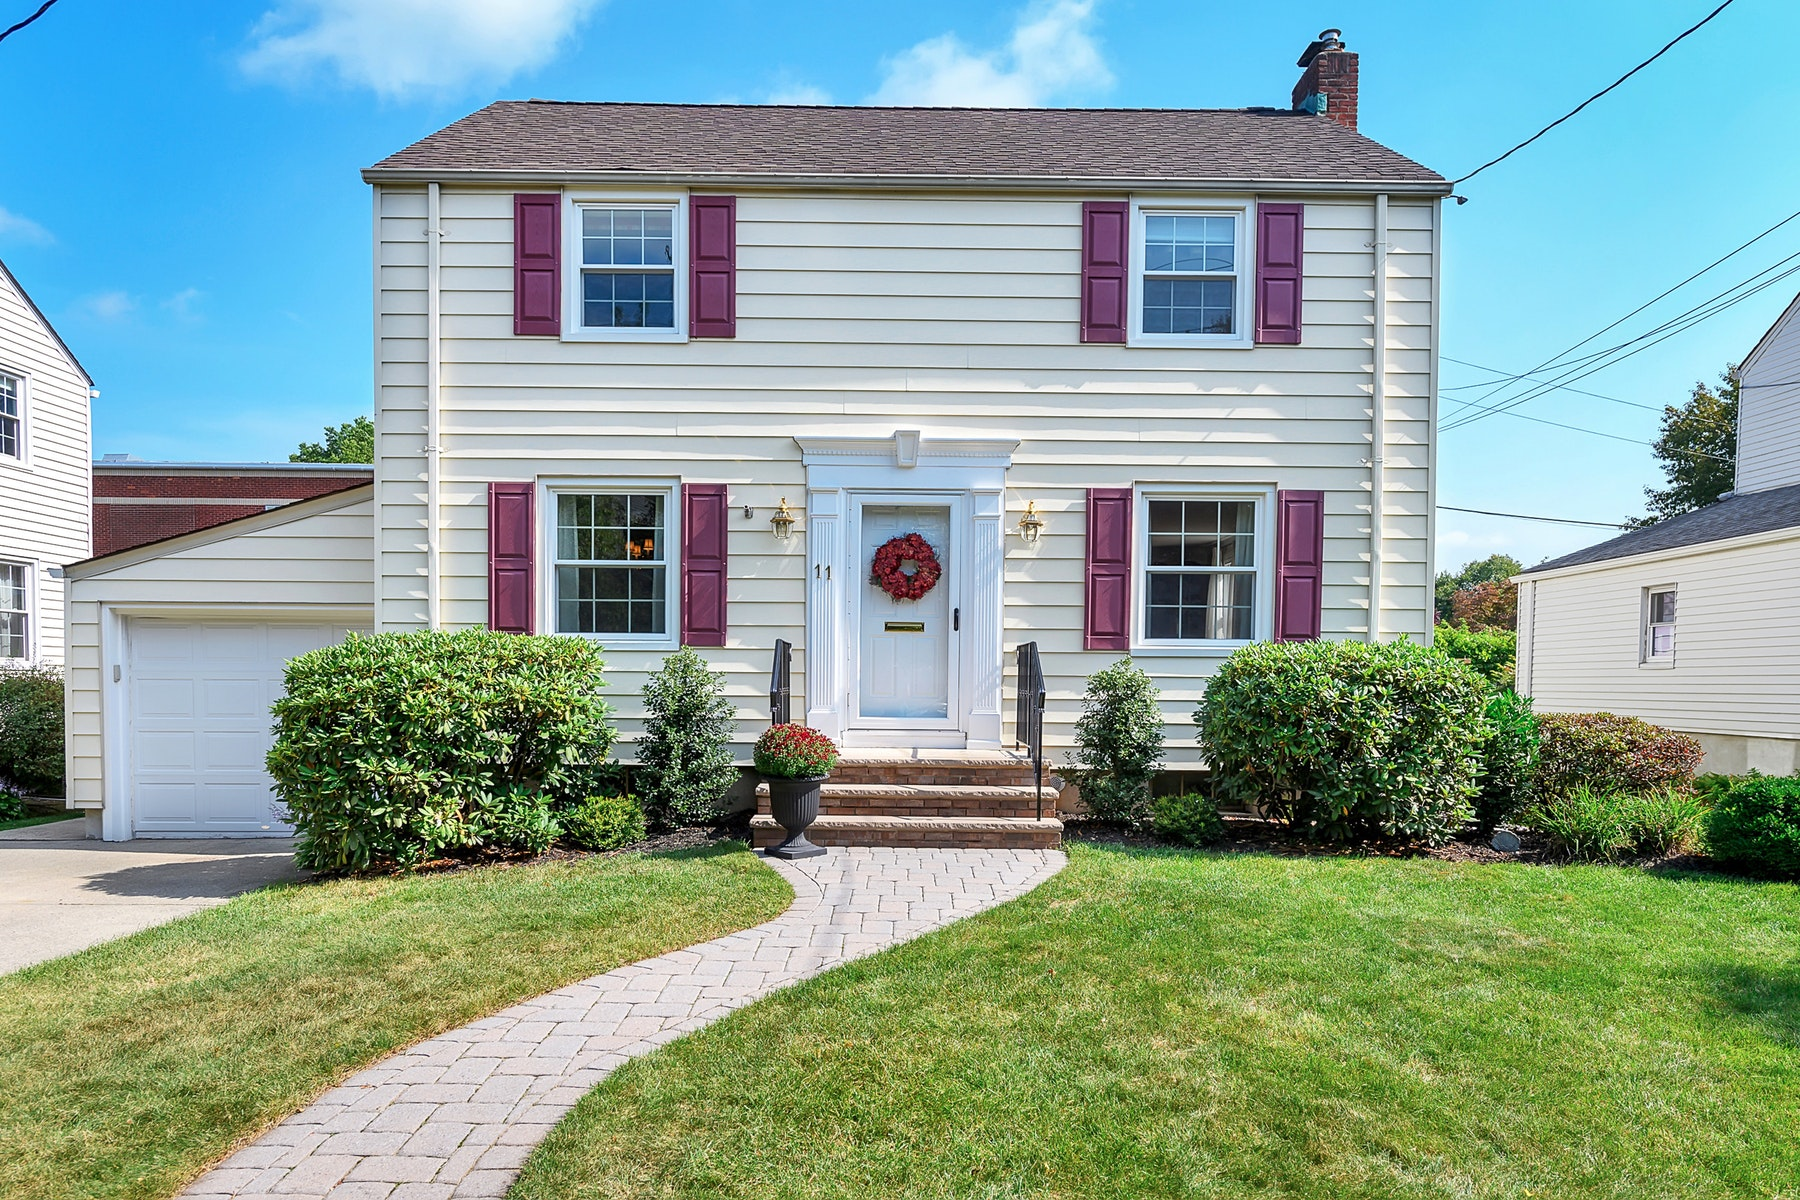 Single Family Homes for Sale at Brookdale Colonial 11 Brookdale Road Bloomfield, New Jersey 07003 United States